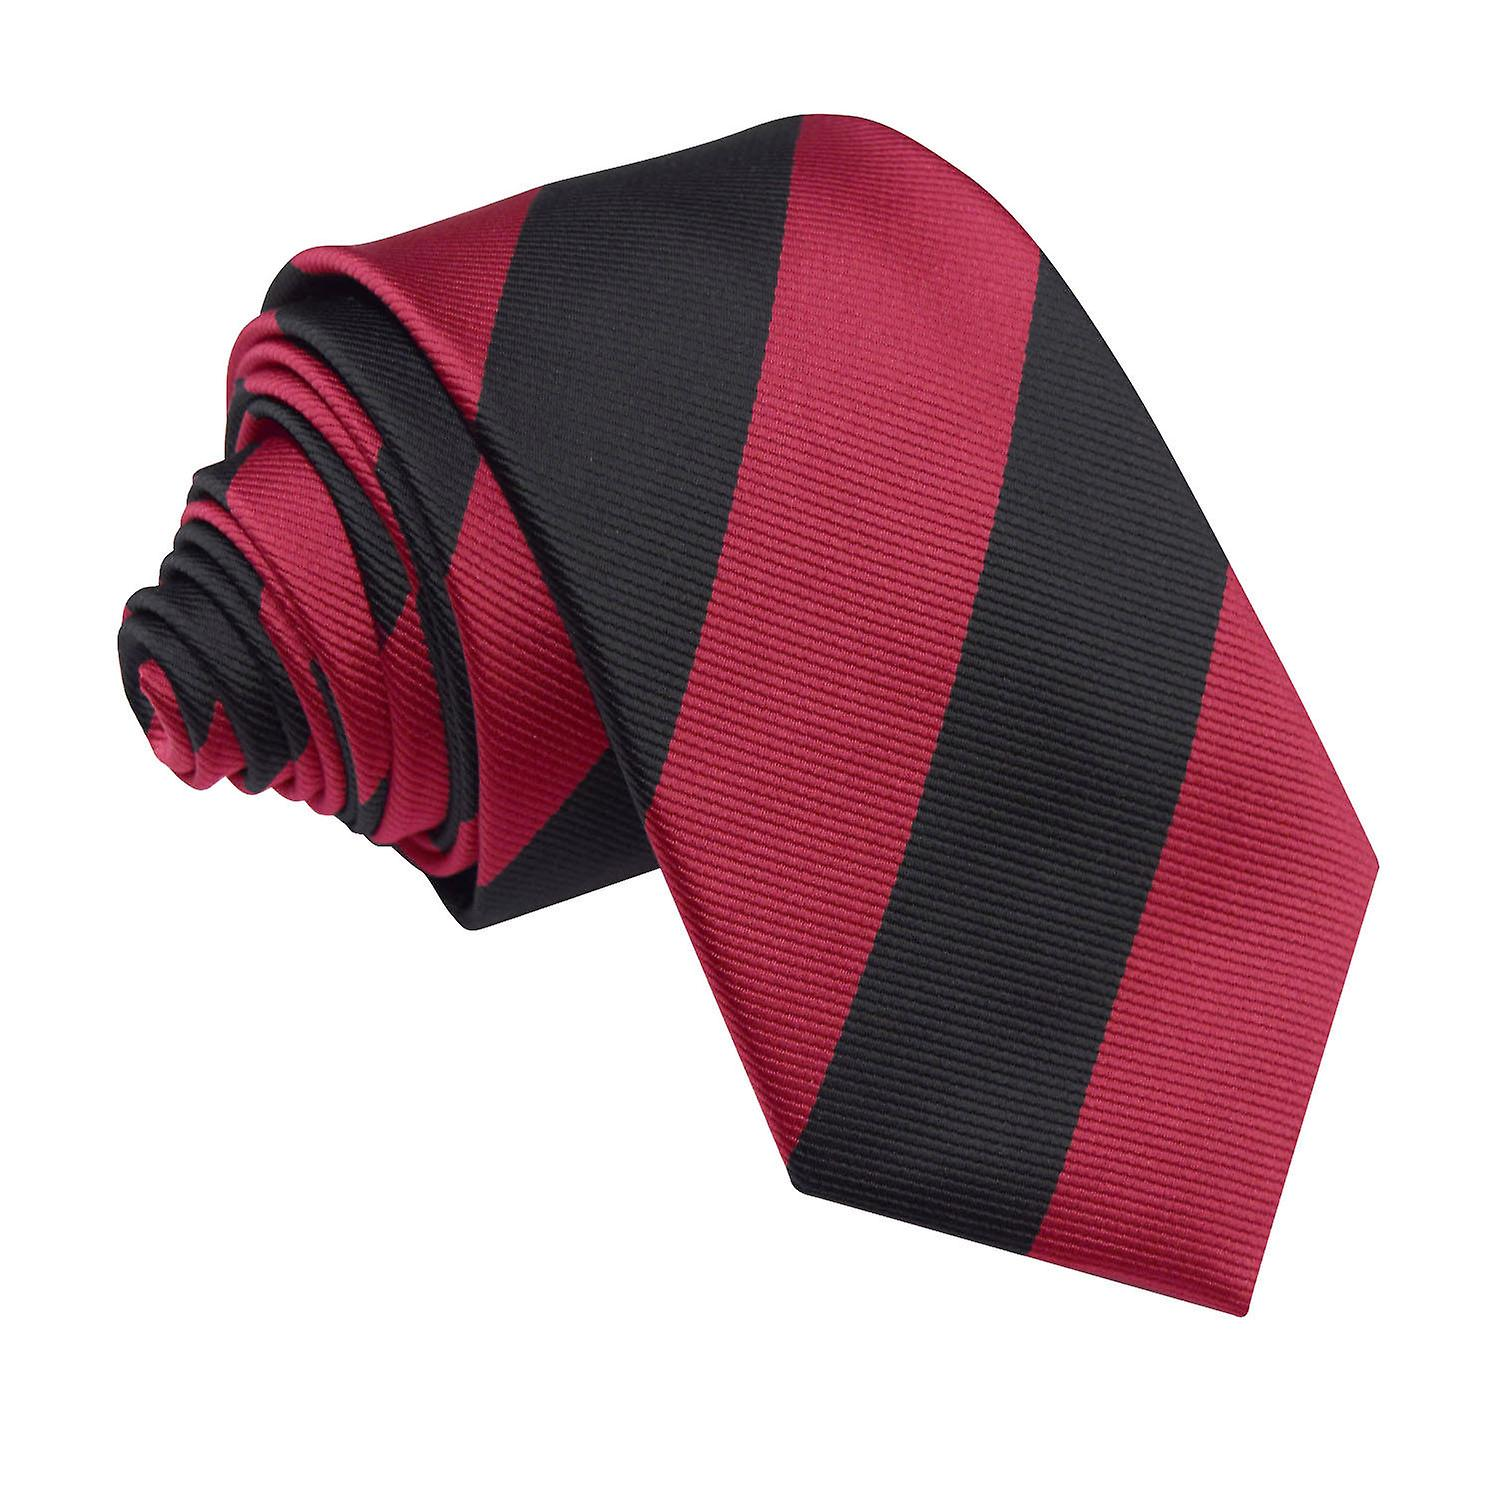 Striped Burgundy & Black Slim Tie